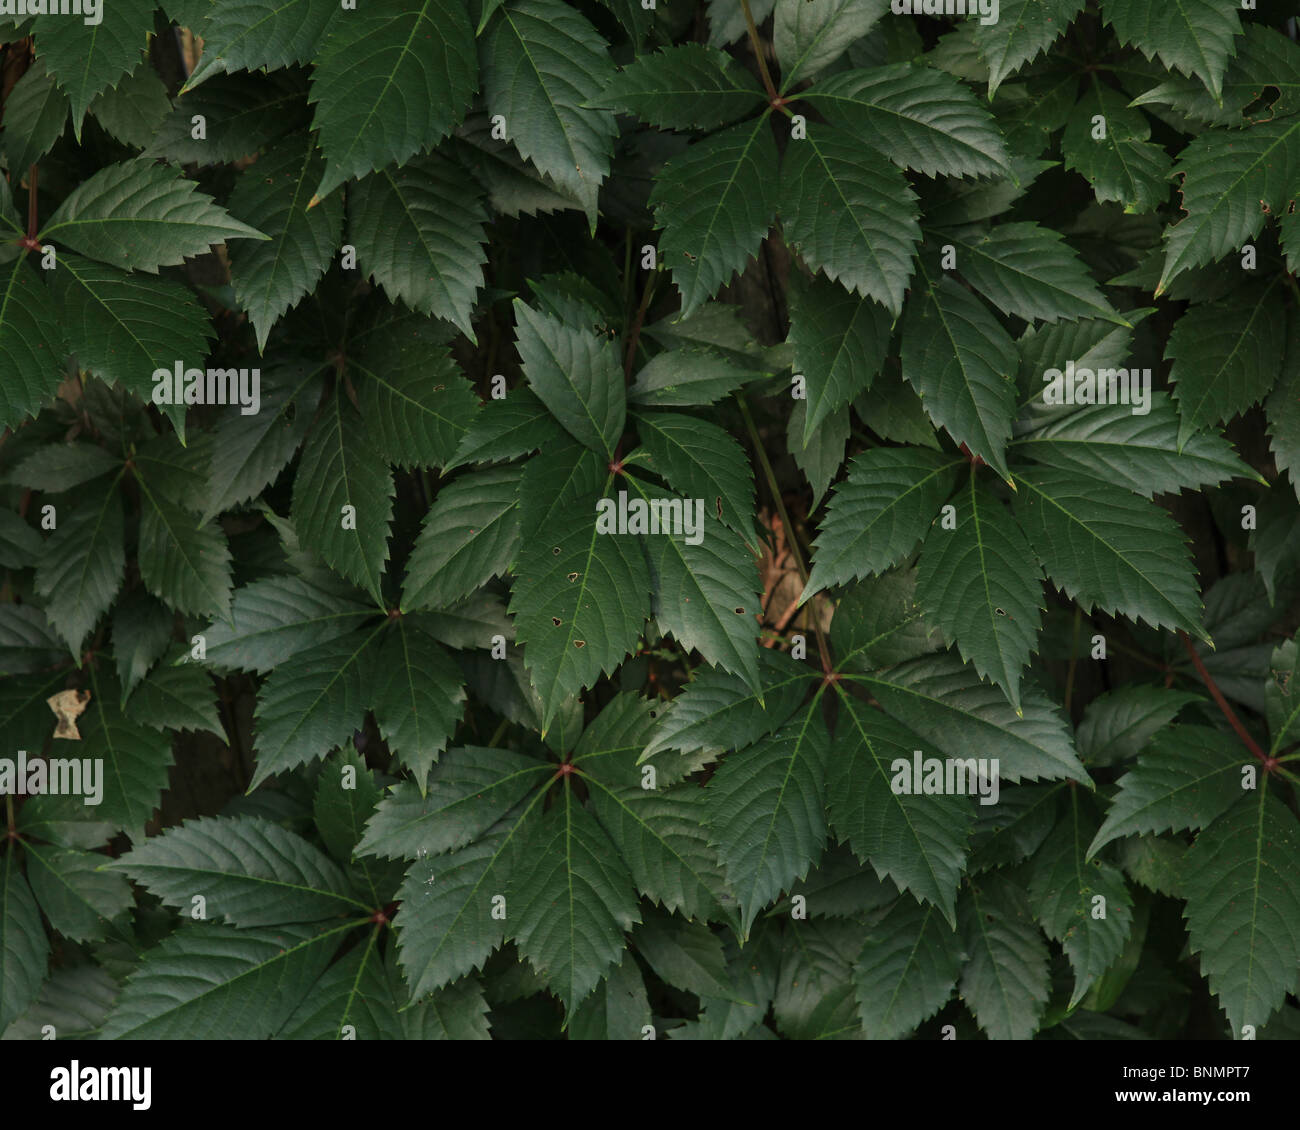 leaves - Stock Image